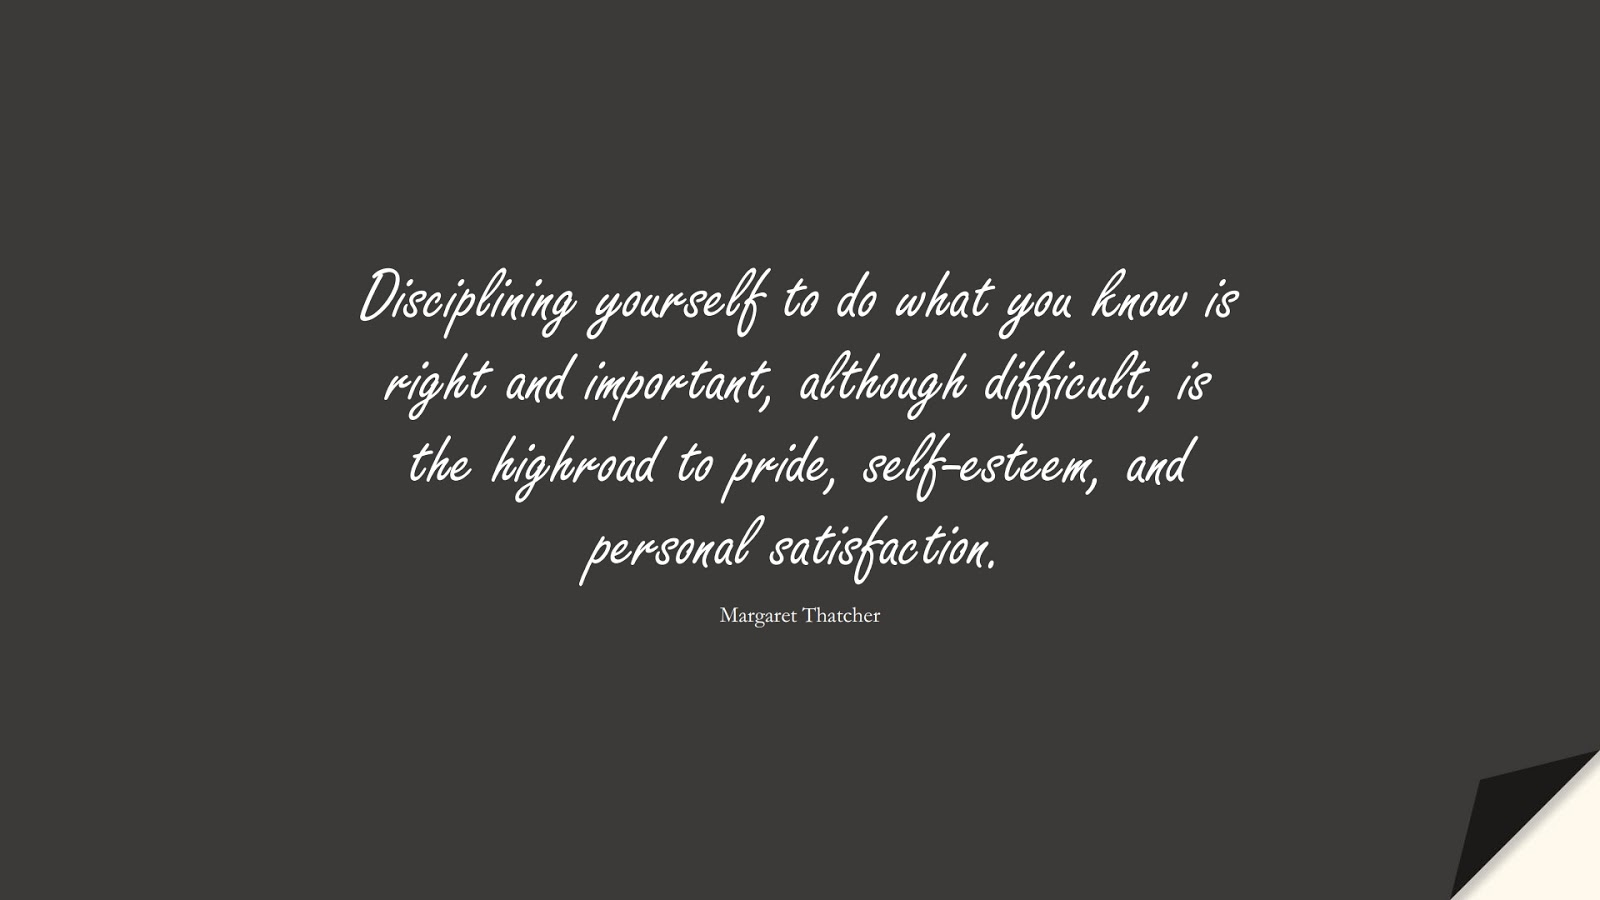 Disciplining yourself to do what you know is right and important, although difficult, is the highroad to pride, self-esteem, and personal satisfaction. (Margaret Thatcher);  #SelfEsteemQuotes